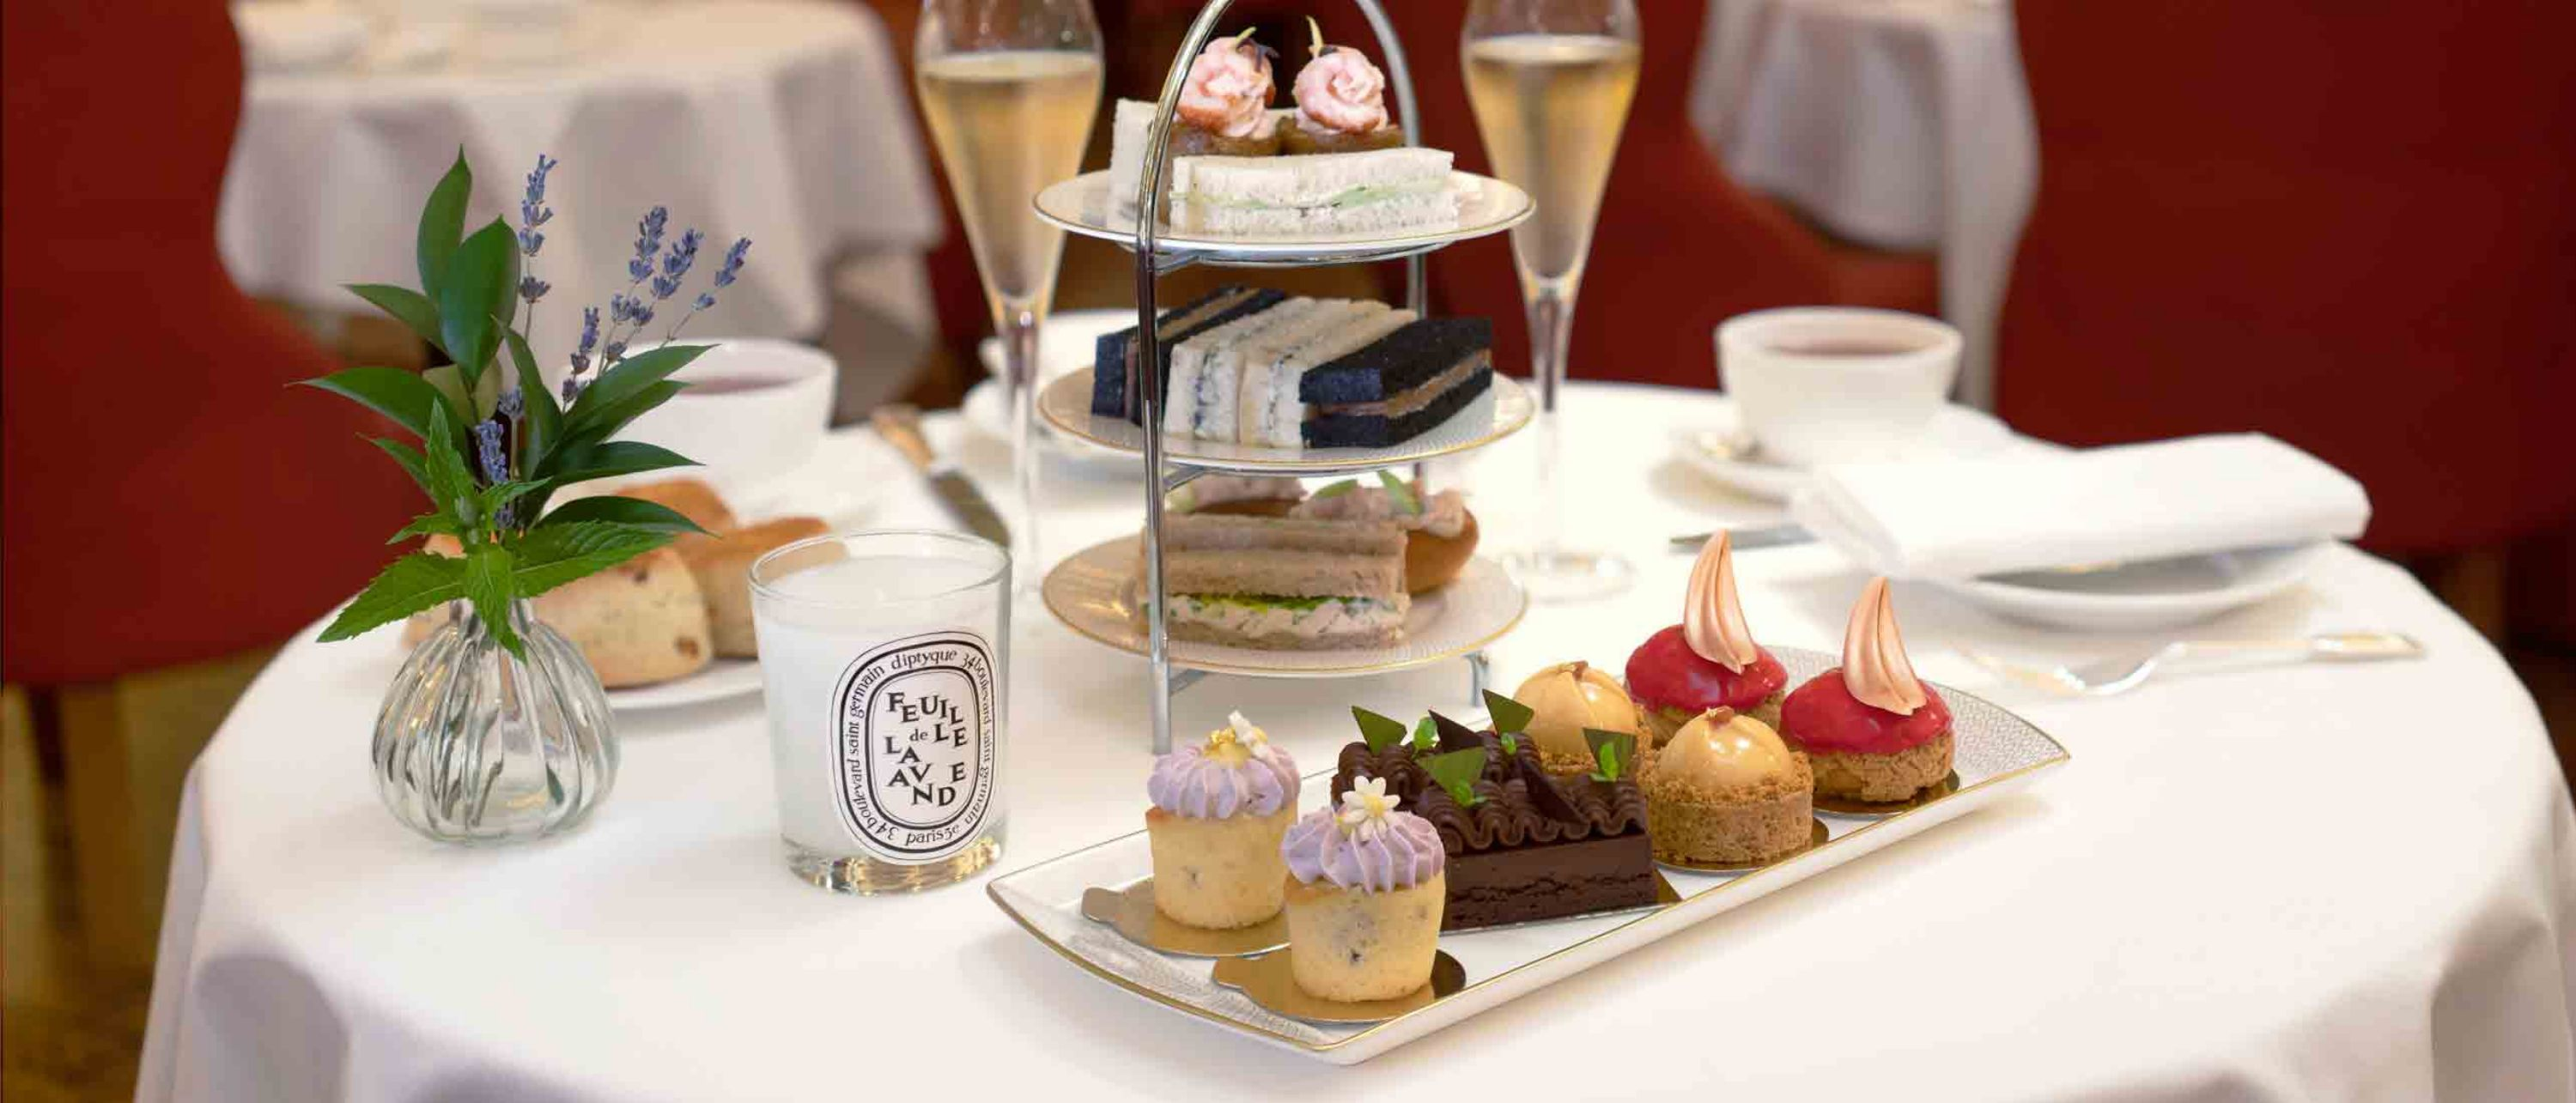 diptyque afternoon tea hotel cafe royal central london regent street